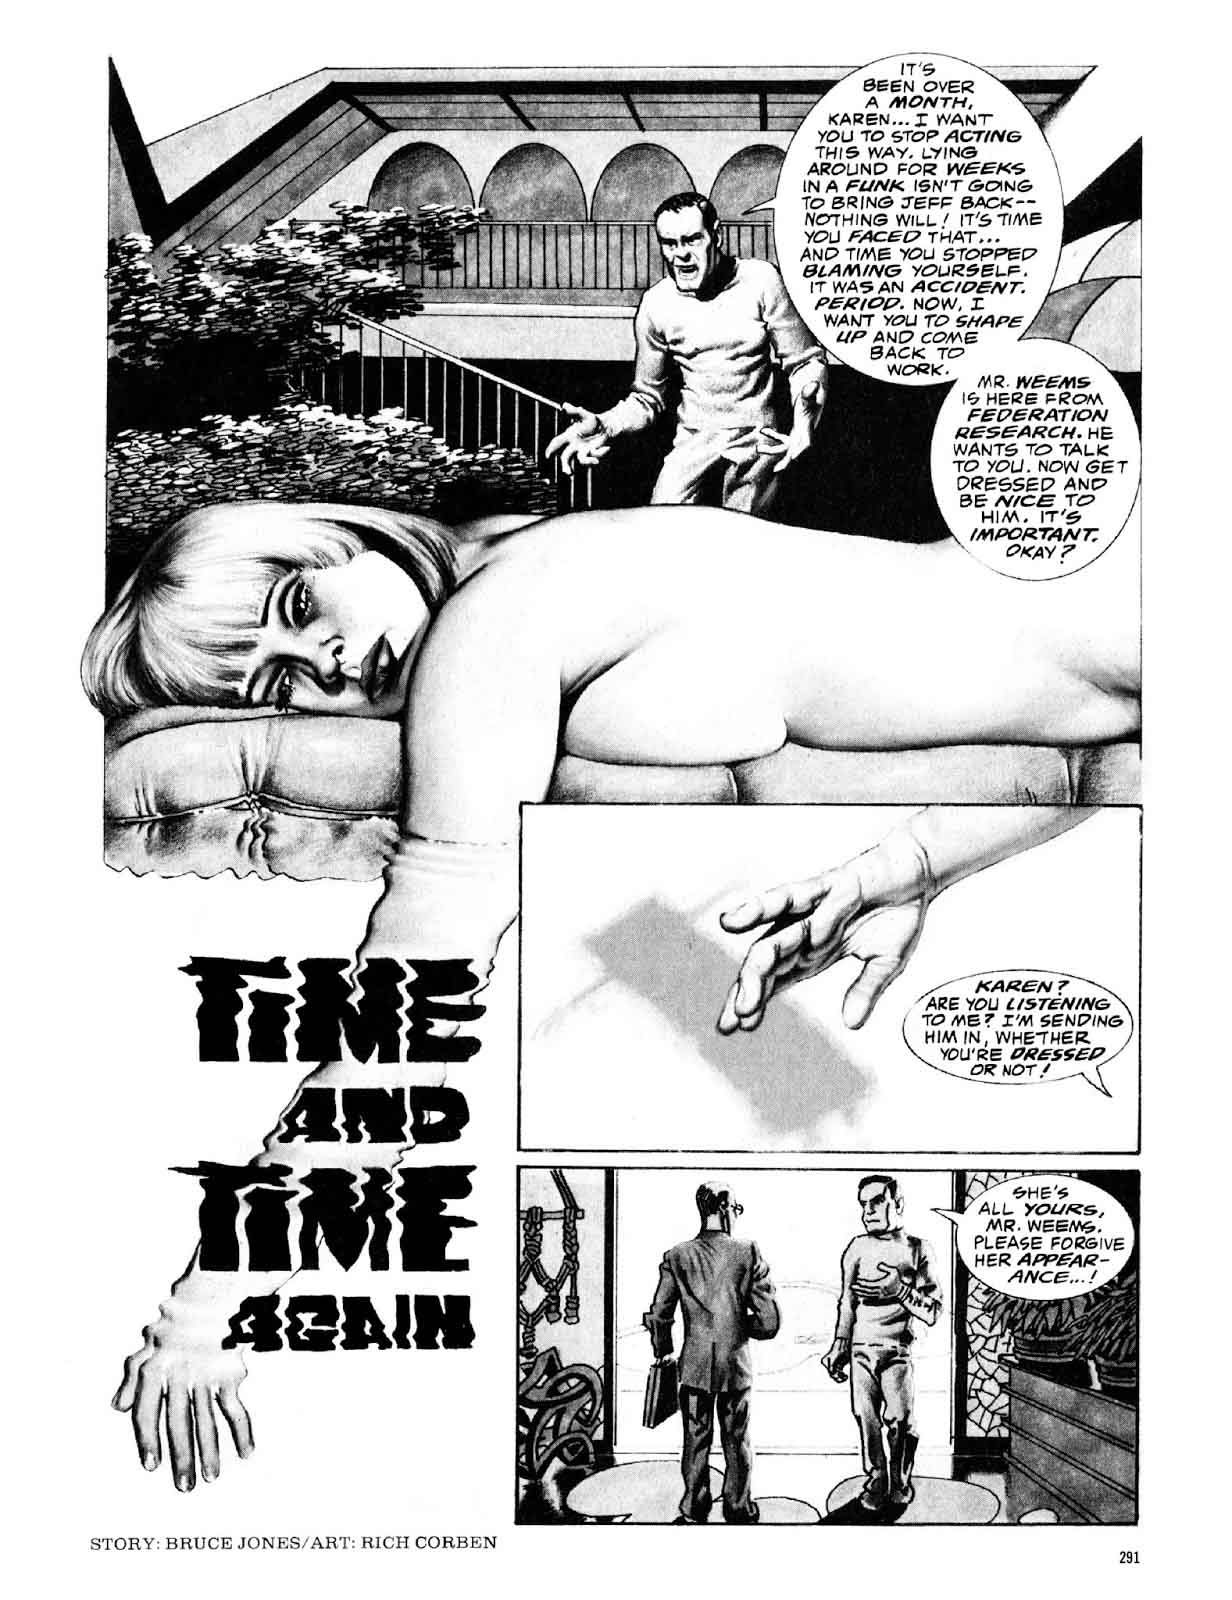 Time and Time Again from Eerie #97 (November 1978)